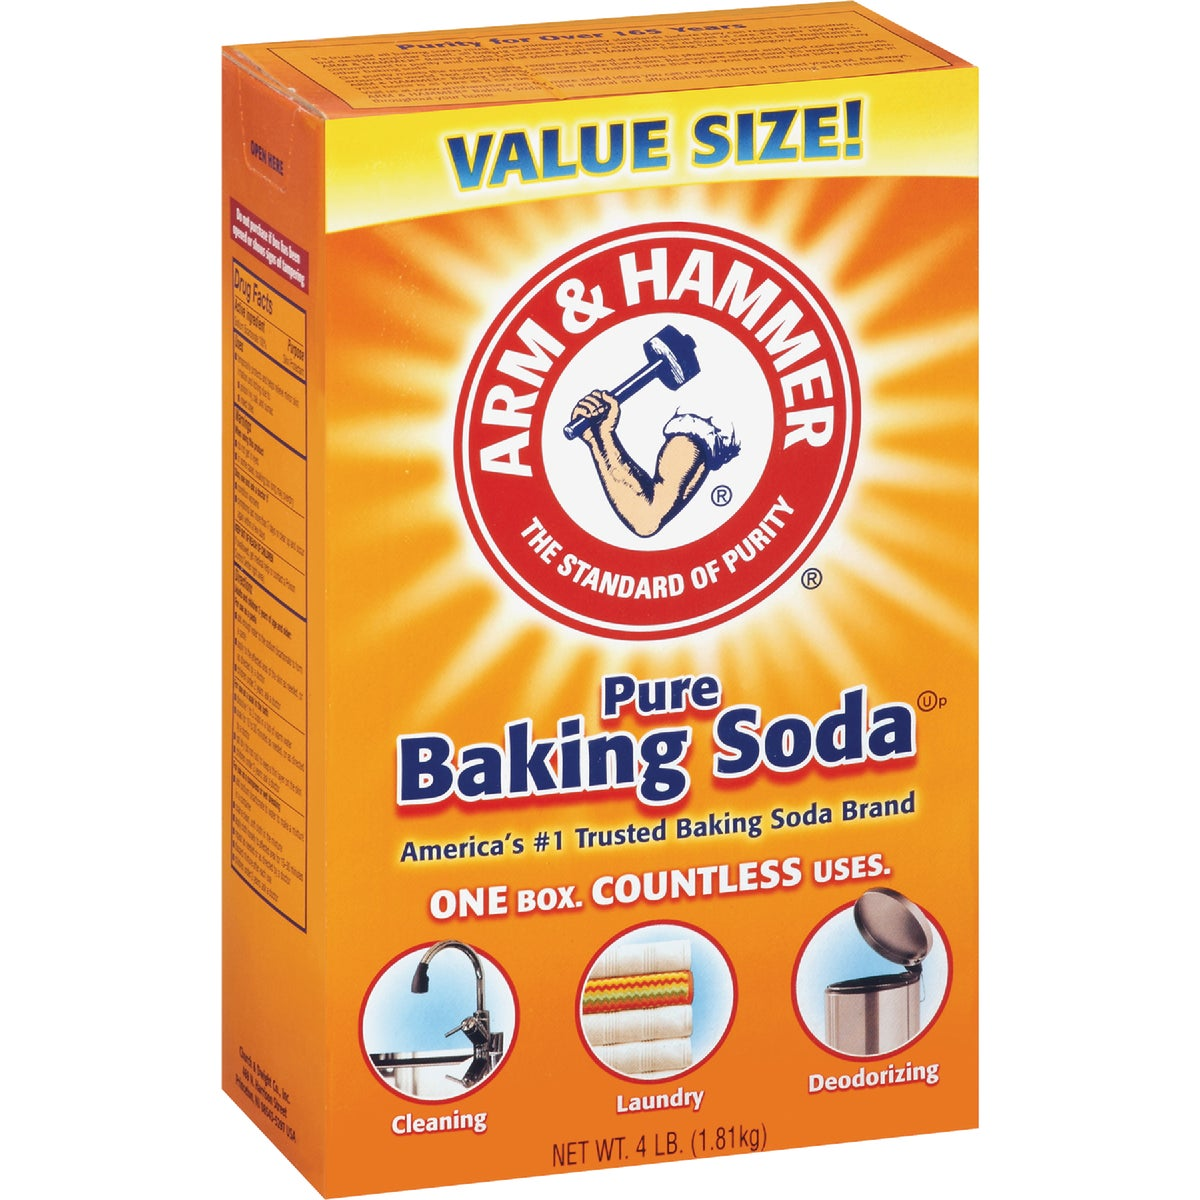 4LB BAKING SODA - 01170 by Church & Dwight Co